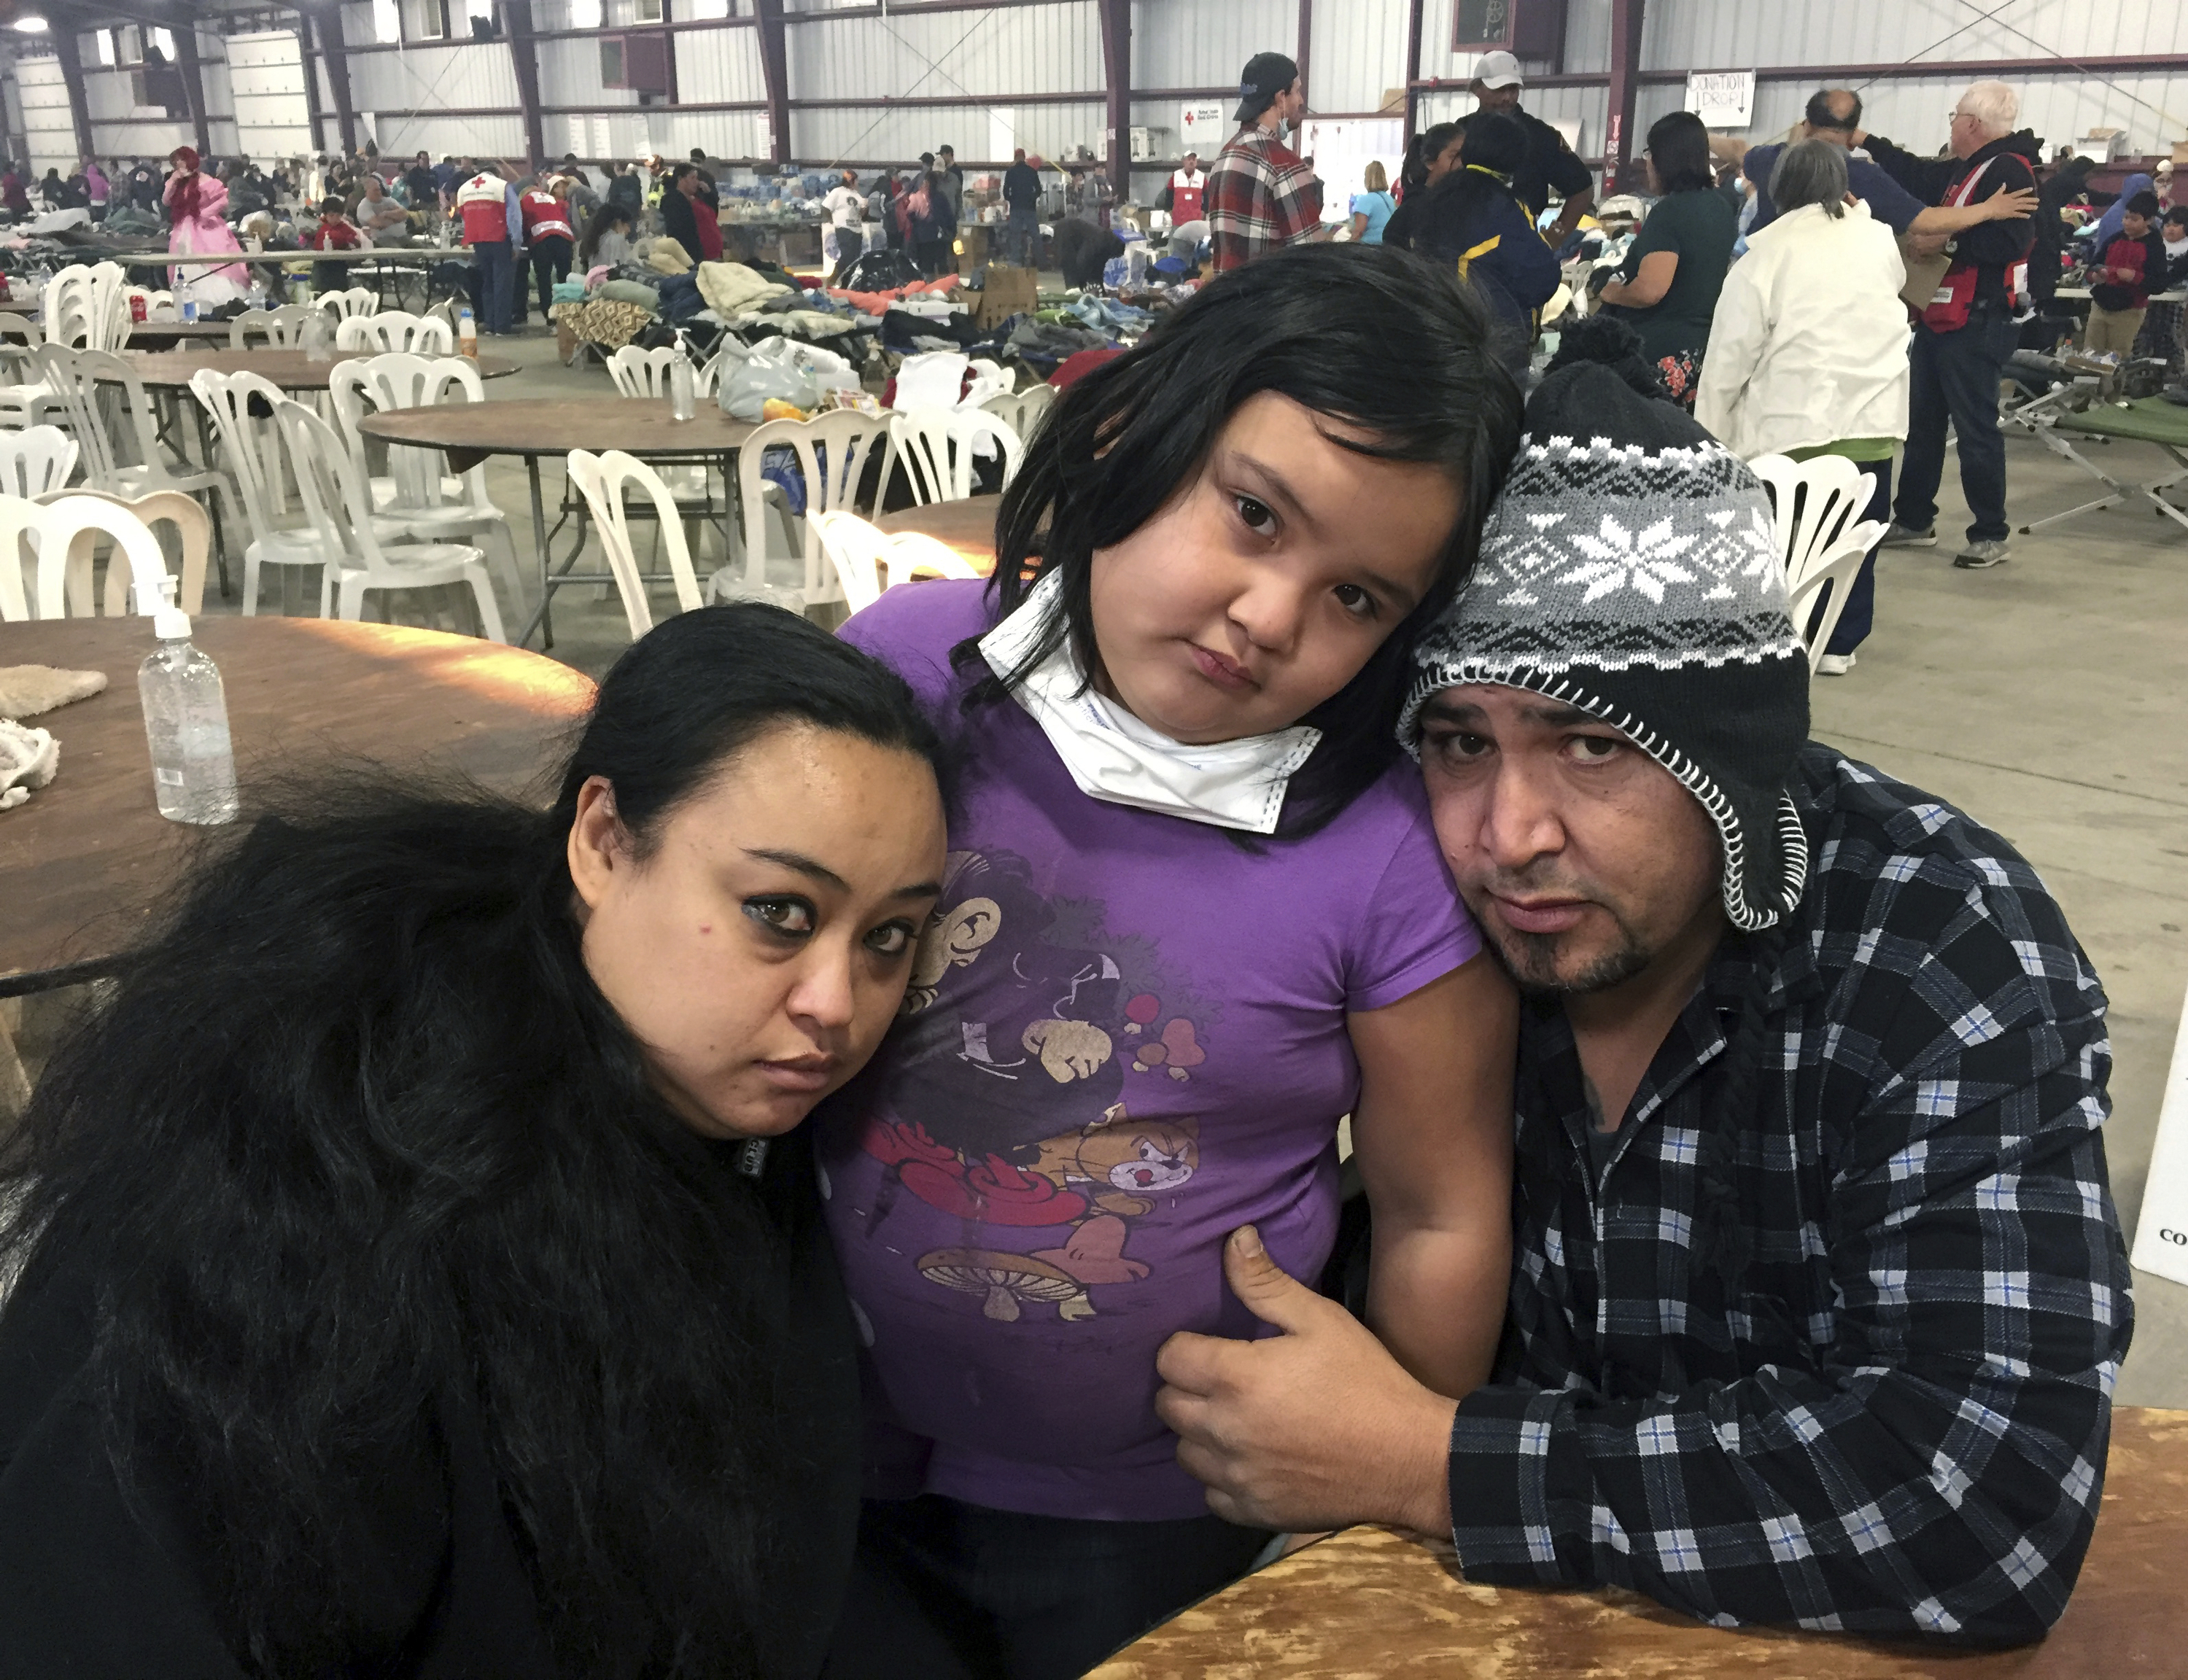 FILE - In this Dec. 6, 2017, file photo wildfire survivors, Marolyn Romero-Sim, left, with Hugo Romero-Rodriguez, center, and their 9-year-old daughter, Milagros, sit inside the evacuation center at the Ventura County Fairgrounds in Ventura, Calif. The family has been at the shelter for two weeks after they watched their home of four years, an RV, burn in the wildfire, along with their beloved dog, their Christmas tree and a few presents. (AP Photo/Amanda Lee Myers, File)